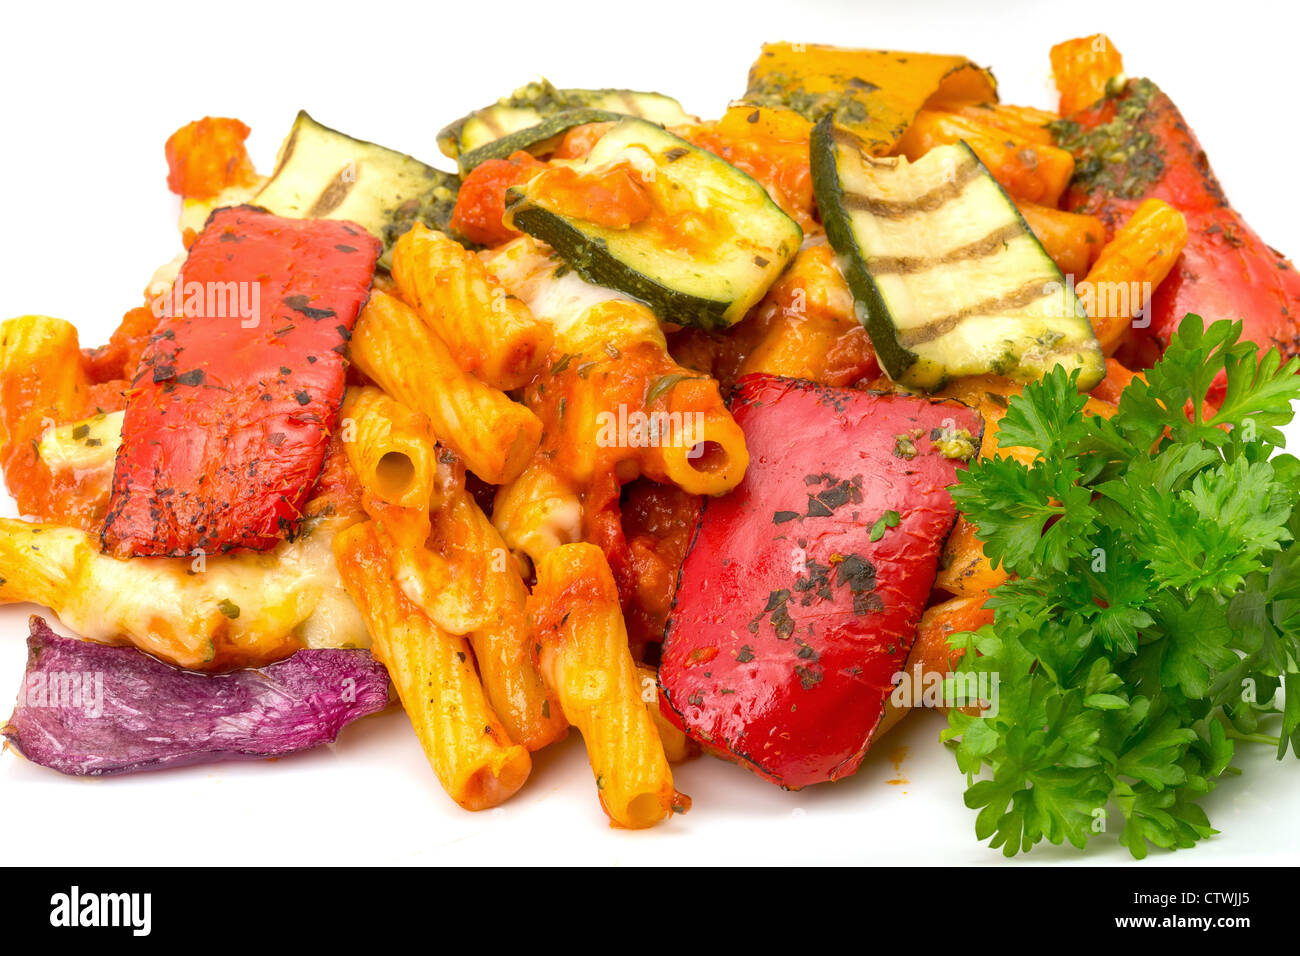 Vegetable pasta bake close-up - studio shot with a white background - Stock Image